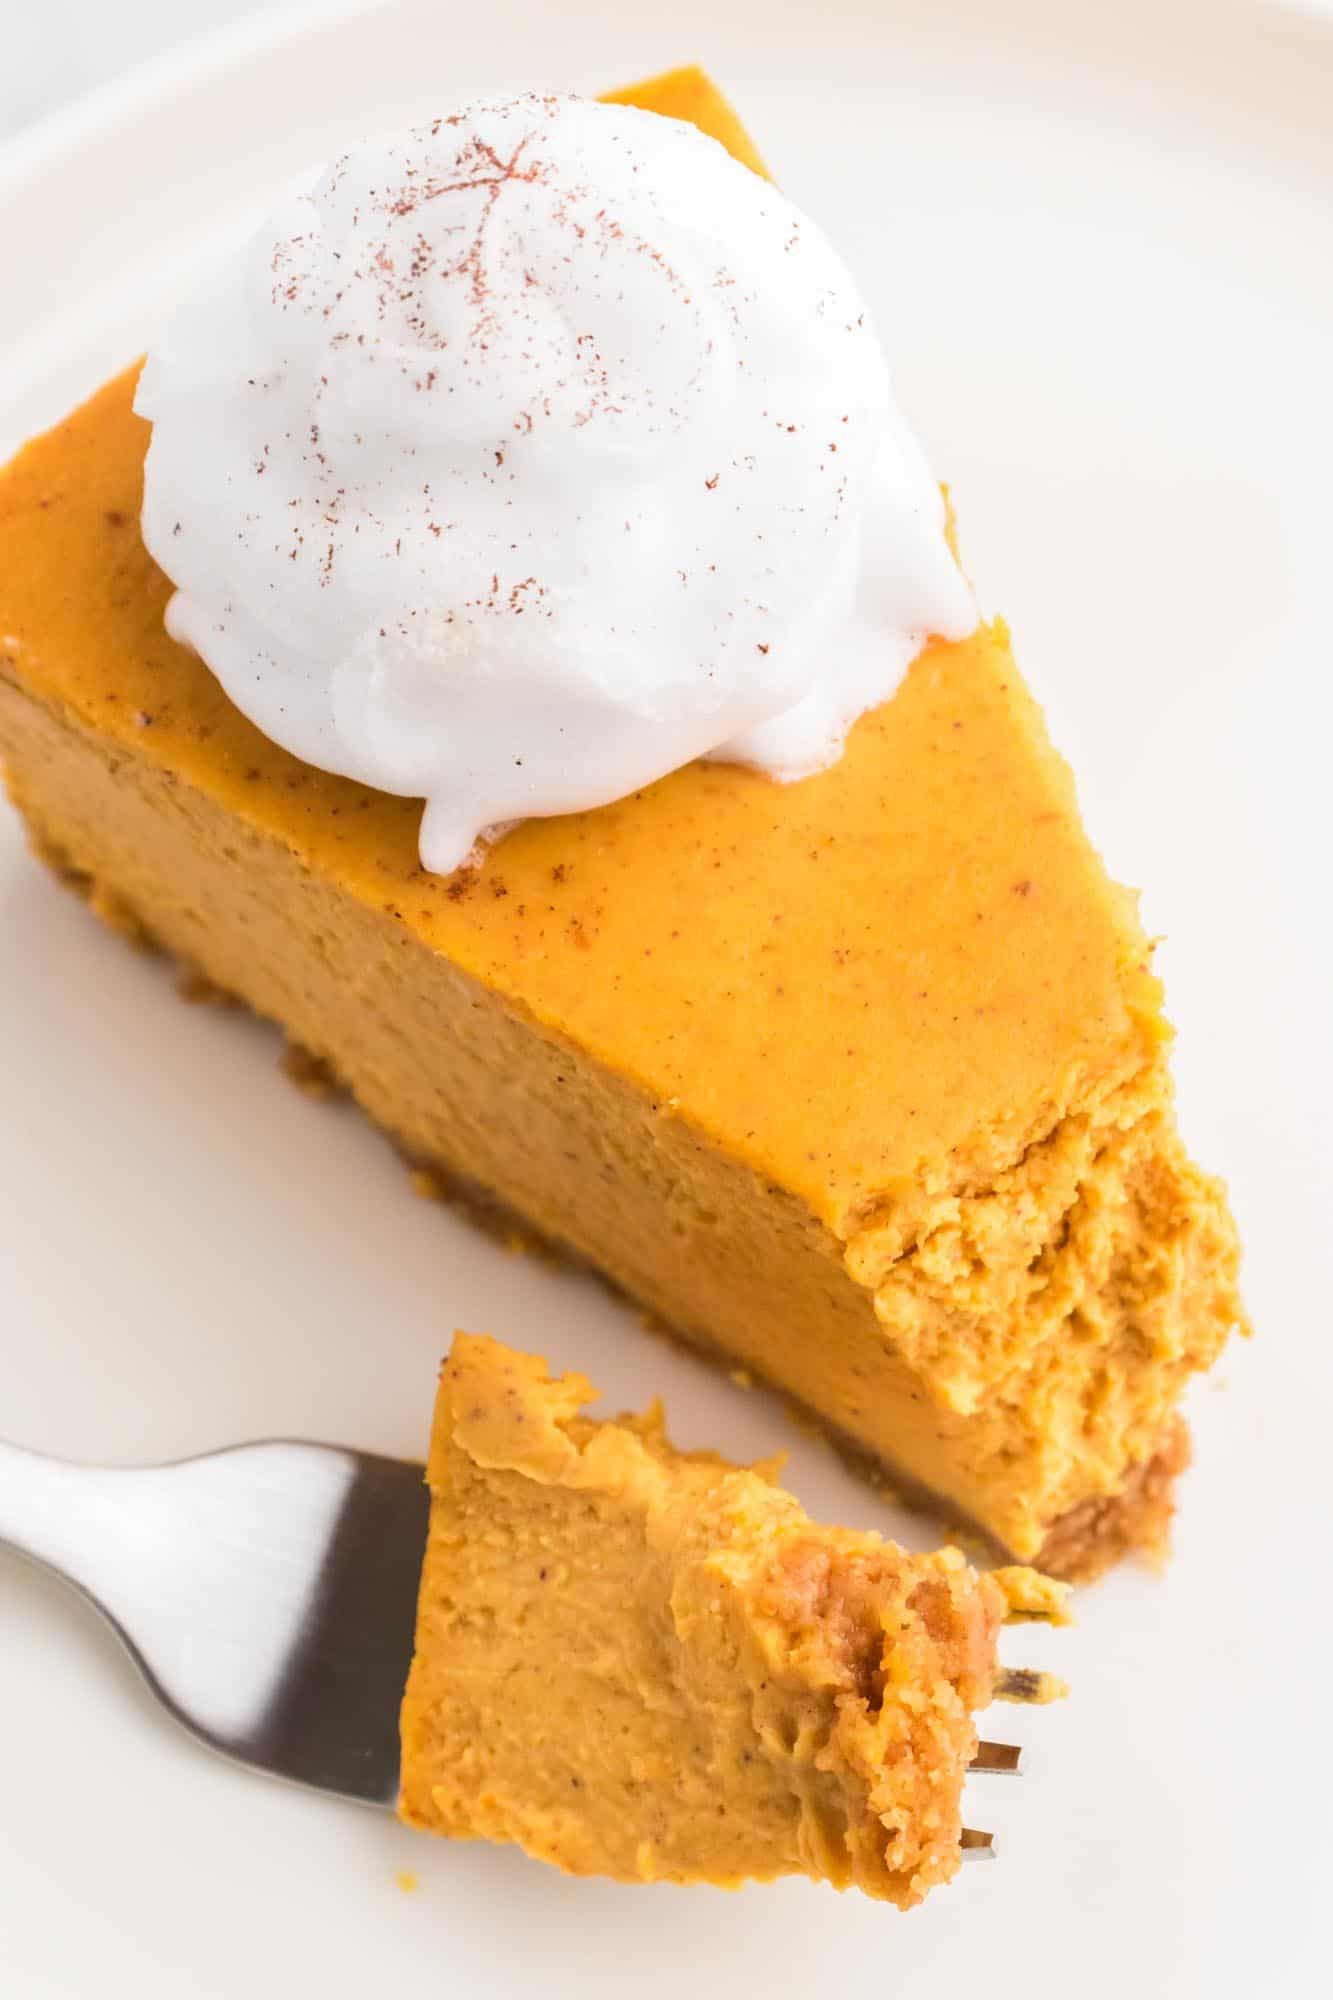 Enjoying a slice of pumpkin cheesecake with a fork